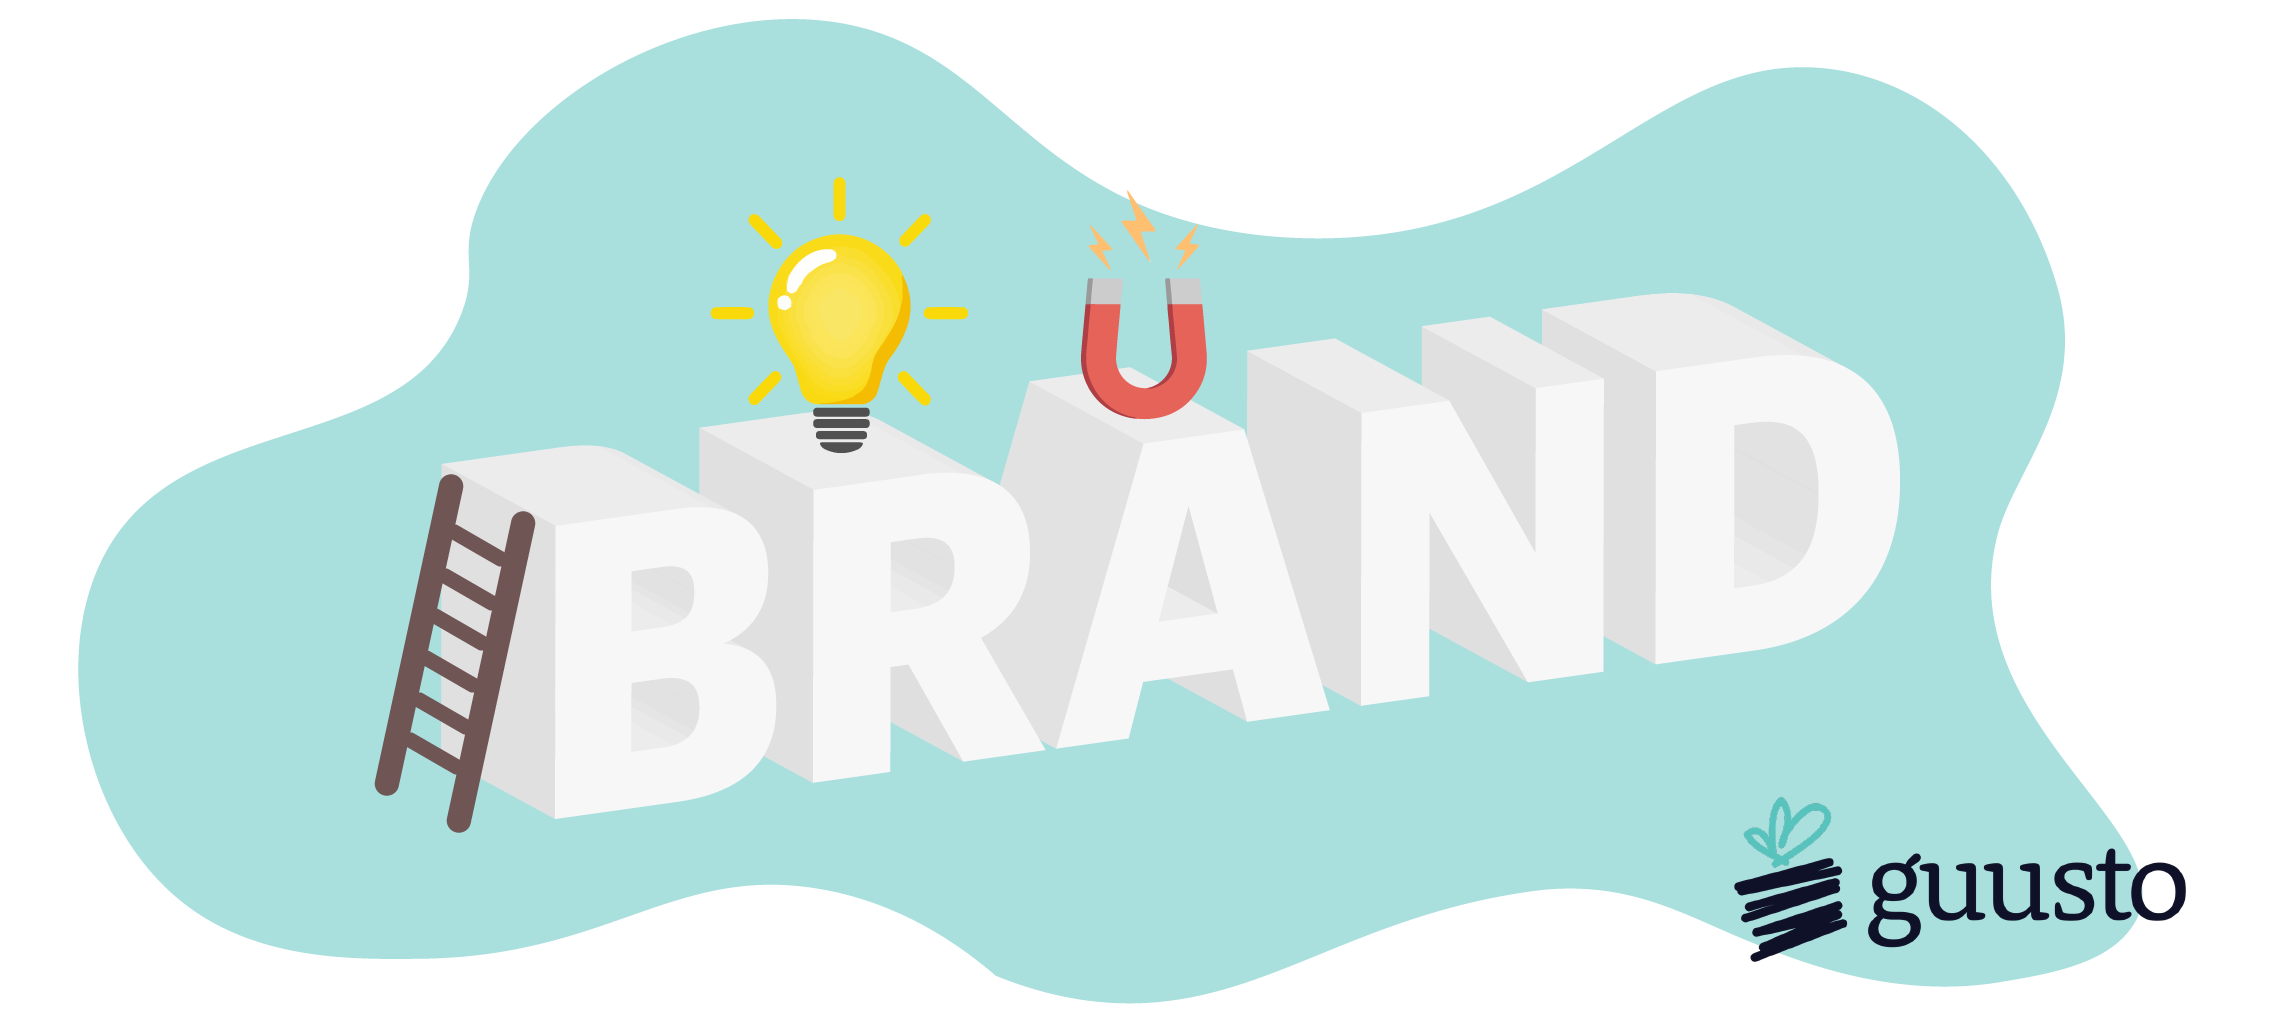 5 Ways to Build a Better Employer Brand